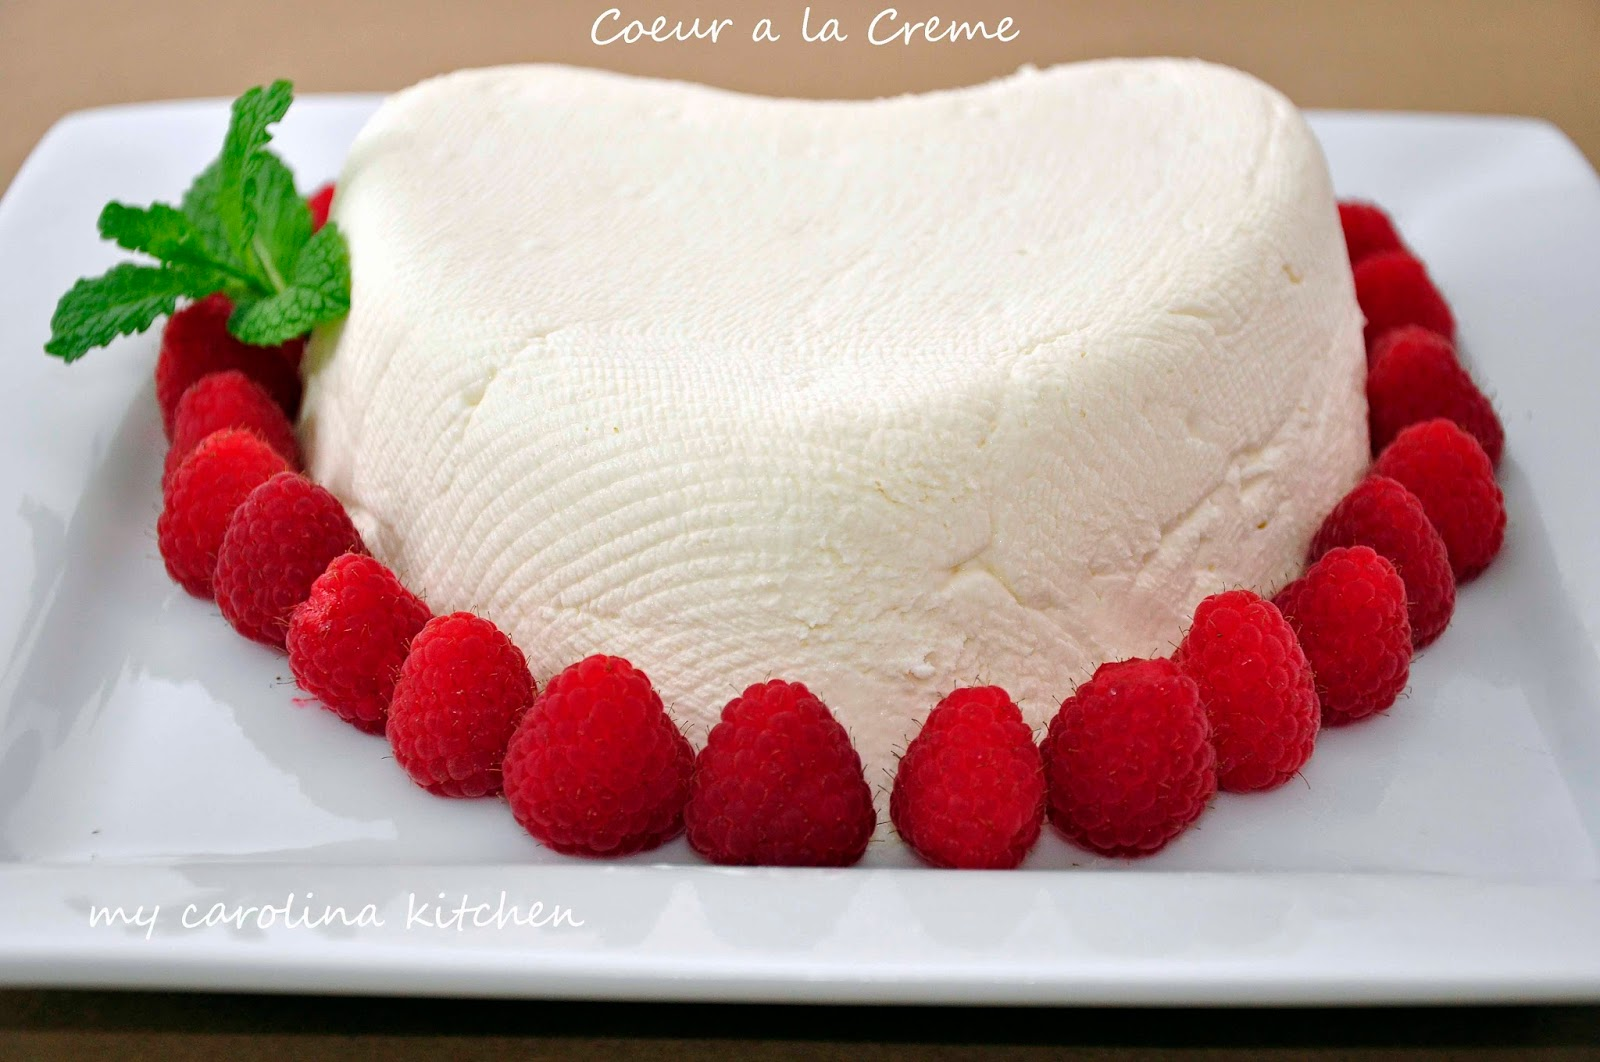 My Carolina Kitchen: Heart Shaped French Coeur a la Crème with ...